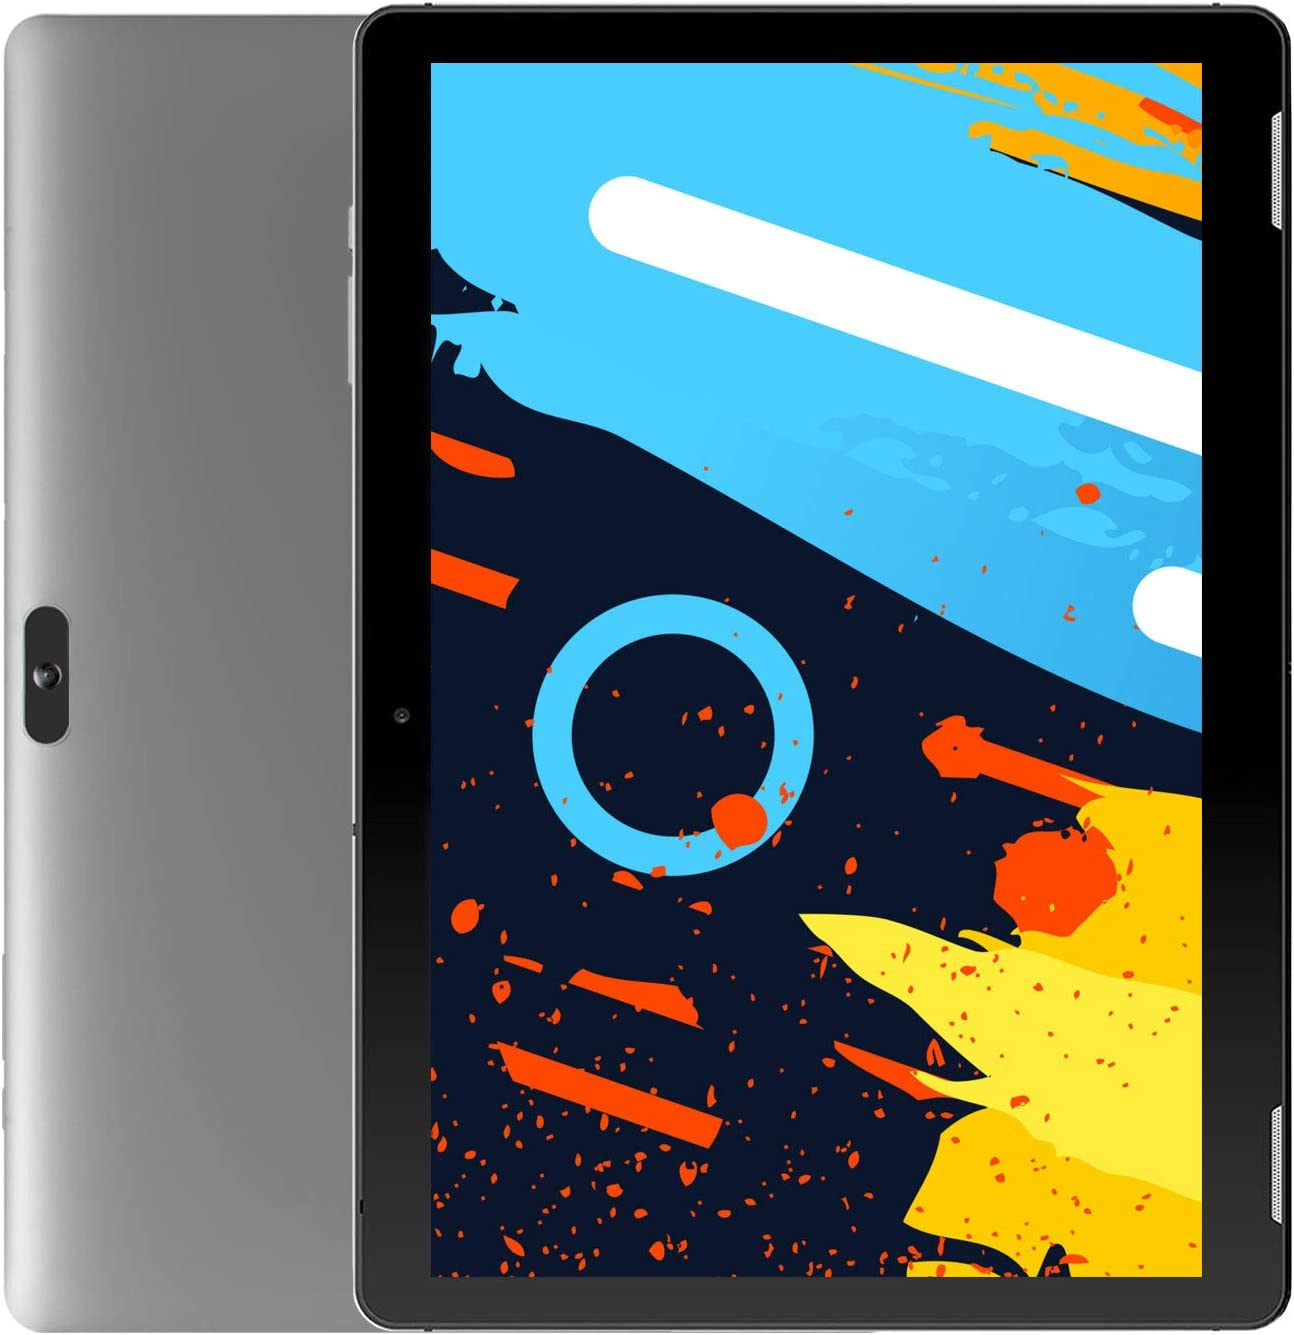 Android Tablet 10 Inch WiFi PC Tablets - Winnovo T10 MTK MT8163 3GB RAM 32GB Storage HD IPS 1280x800 2.0MP+5.0MP Camera Dual Band 5.0GHz Bluetooth HDMI GPS FM Android 9.0 Pie (Grey)